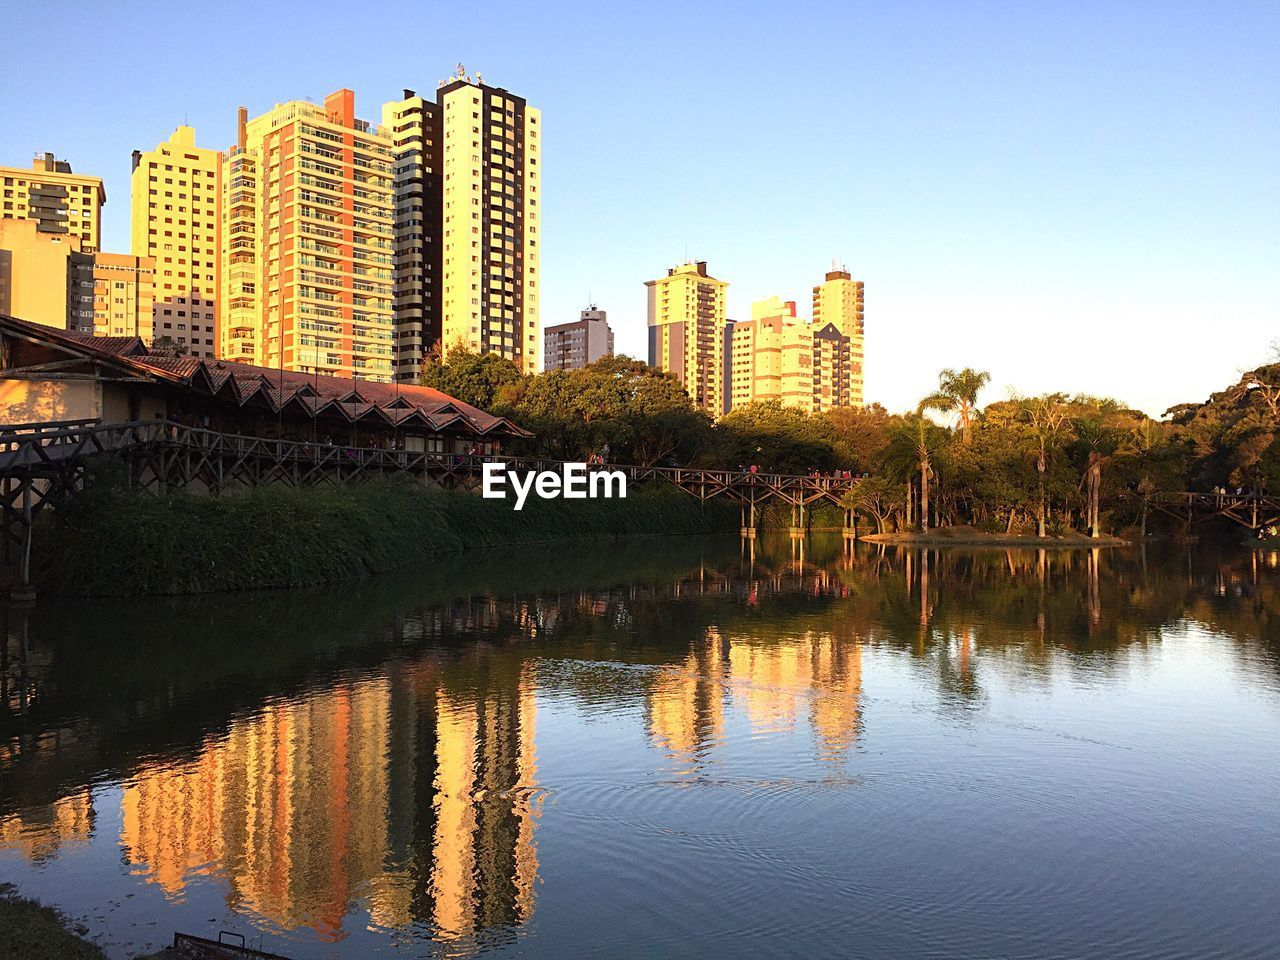 architecture, built structure, building exterior, reflection, skyscraper, water, waterfront, tree, outdoors, river, clear sky, city, no people, growth, day, sky, nature, modern, beauty in nature, cityscape